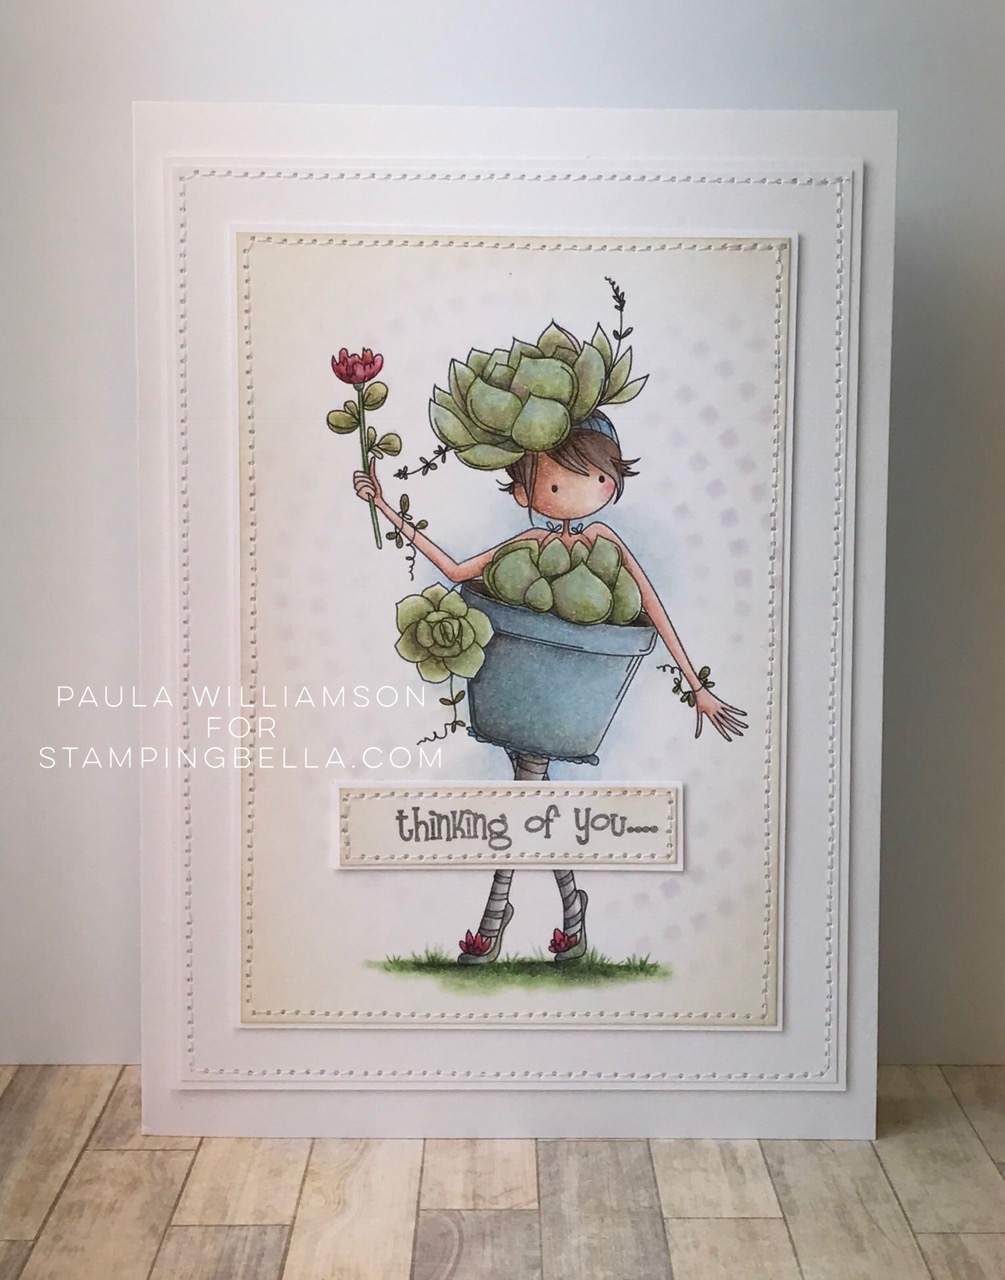 Stamping Bella Sneak Peek March 2017- TINY TOWNIE SUSIE the SUCCULENT RUBBER STAMP. Card by PAULA WILLIAMSON